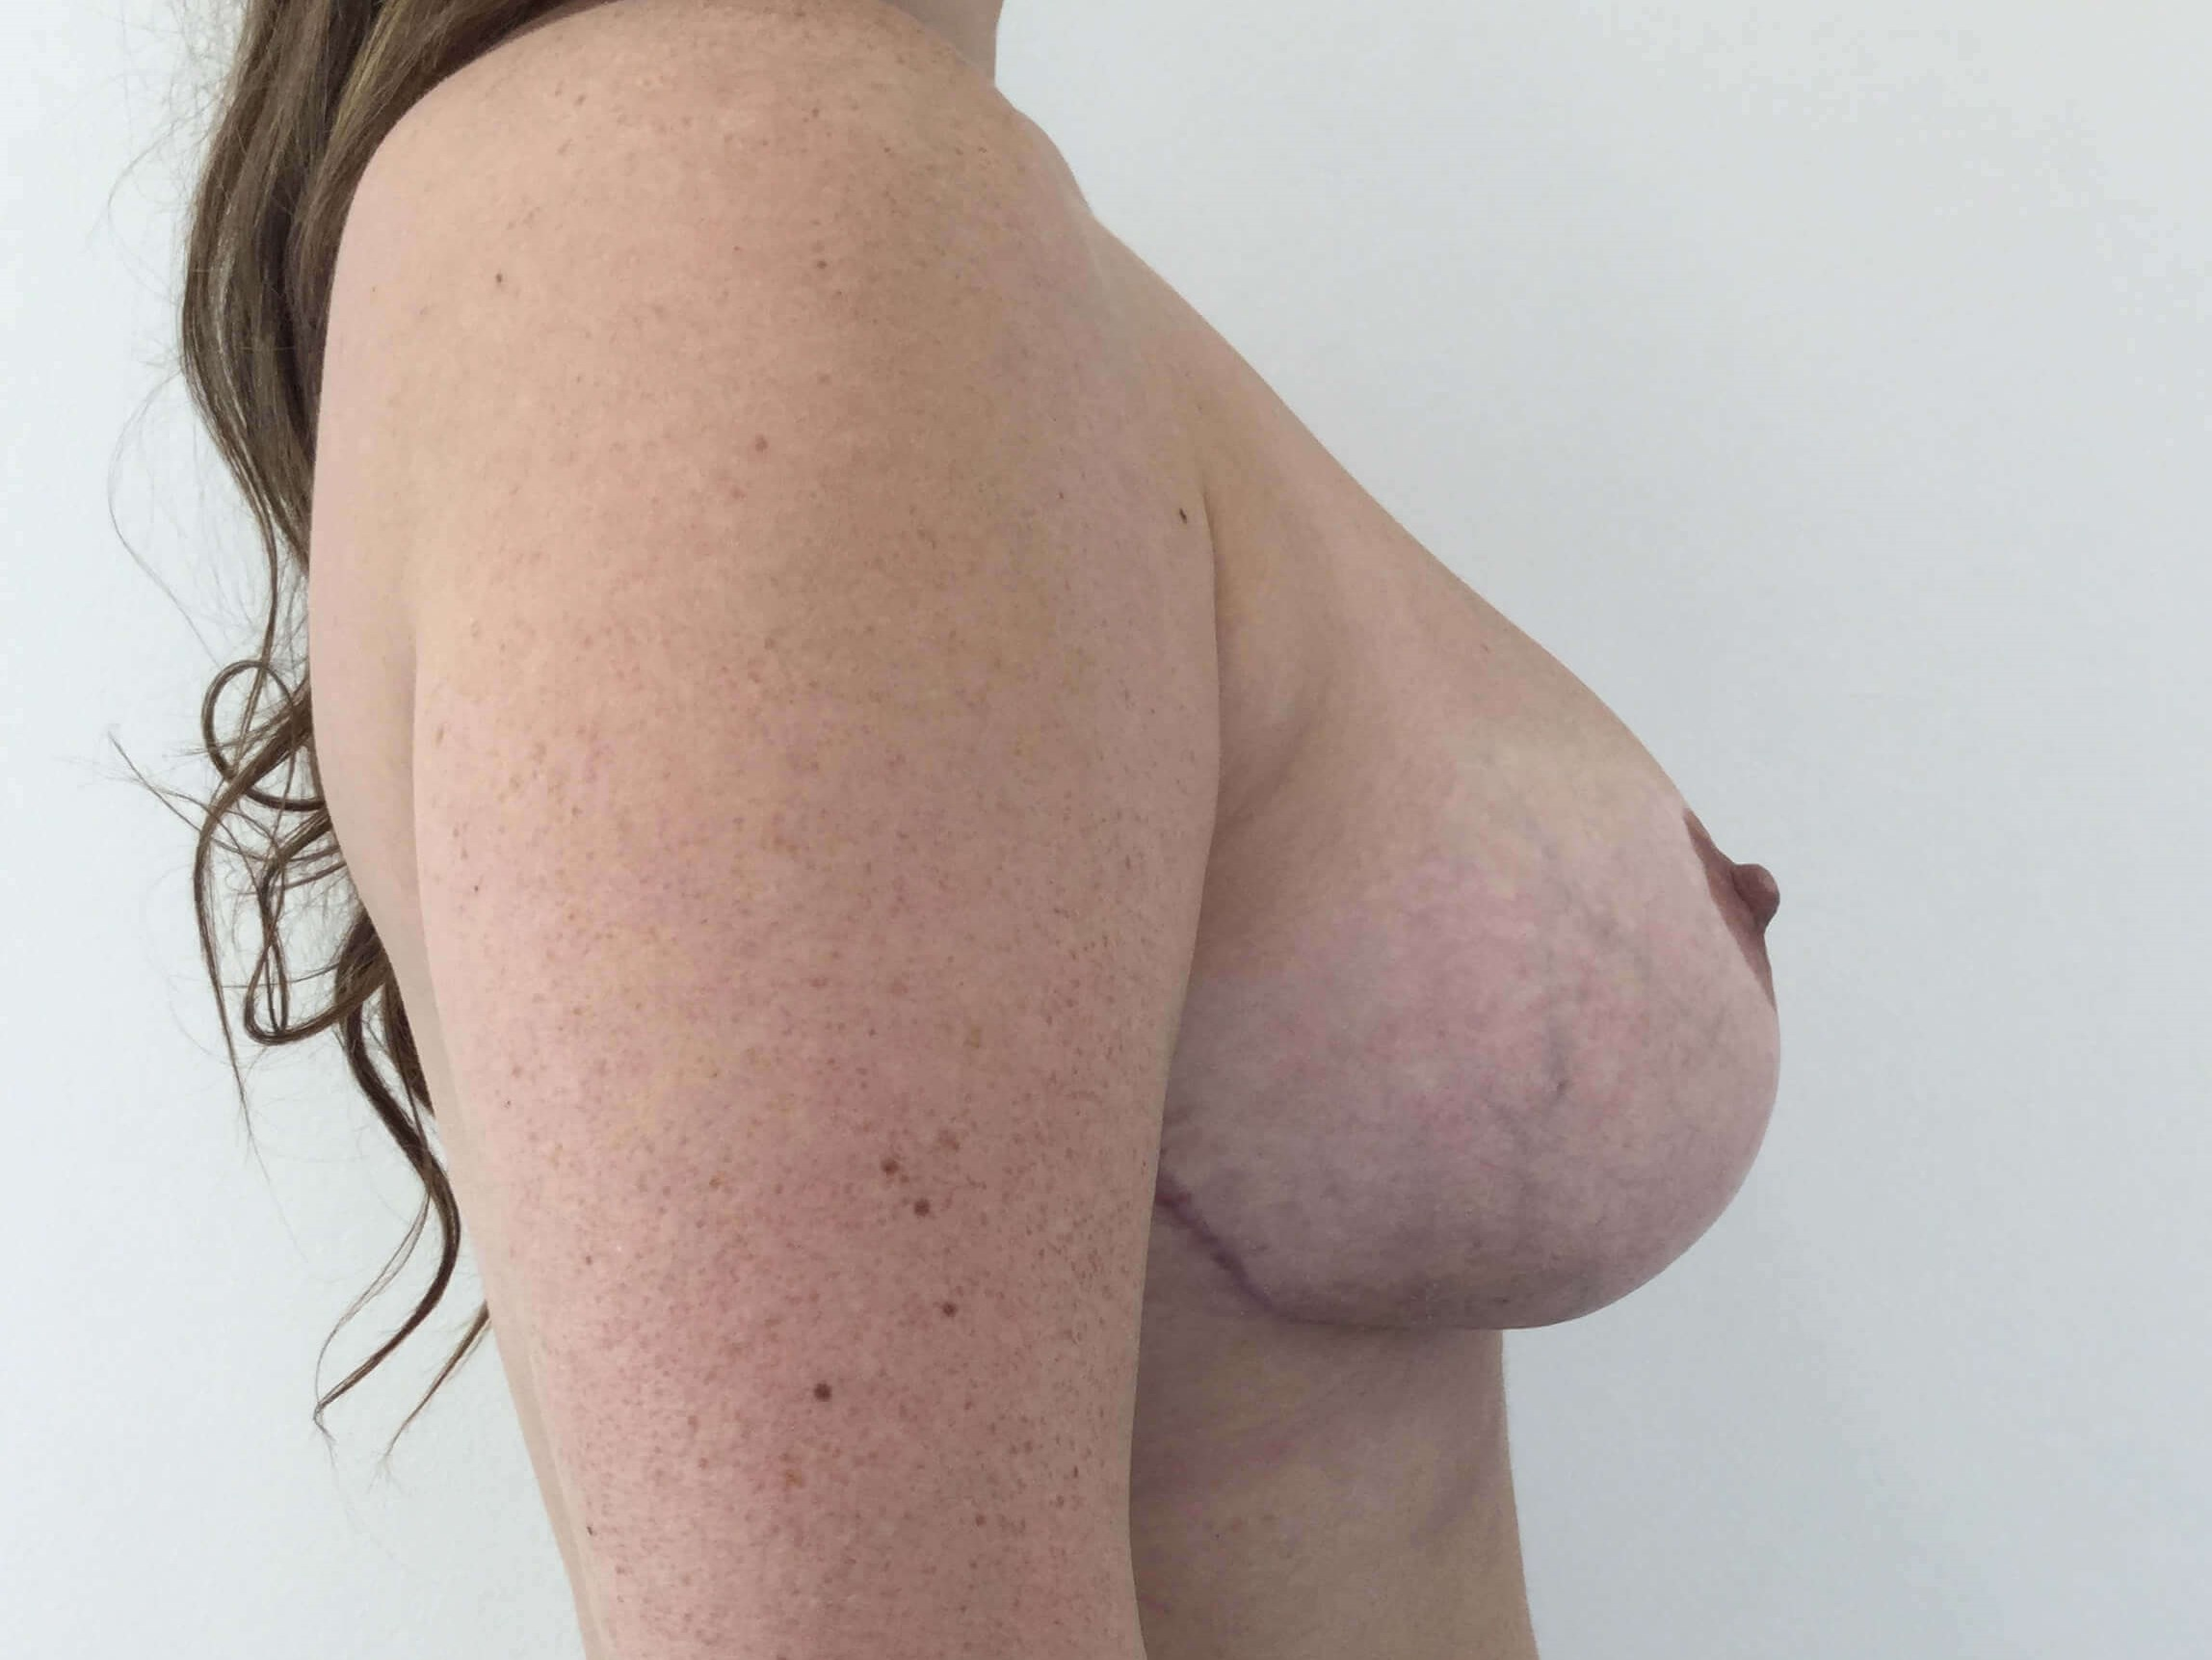 DALLAS TEXAS WOMAN HAS BREAST REDUCTION SURGERY